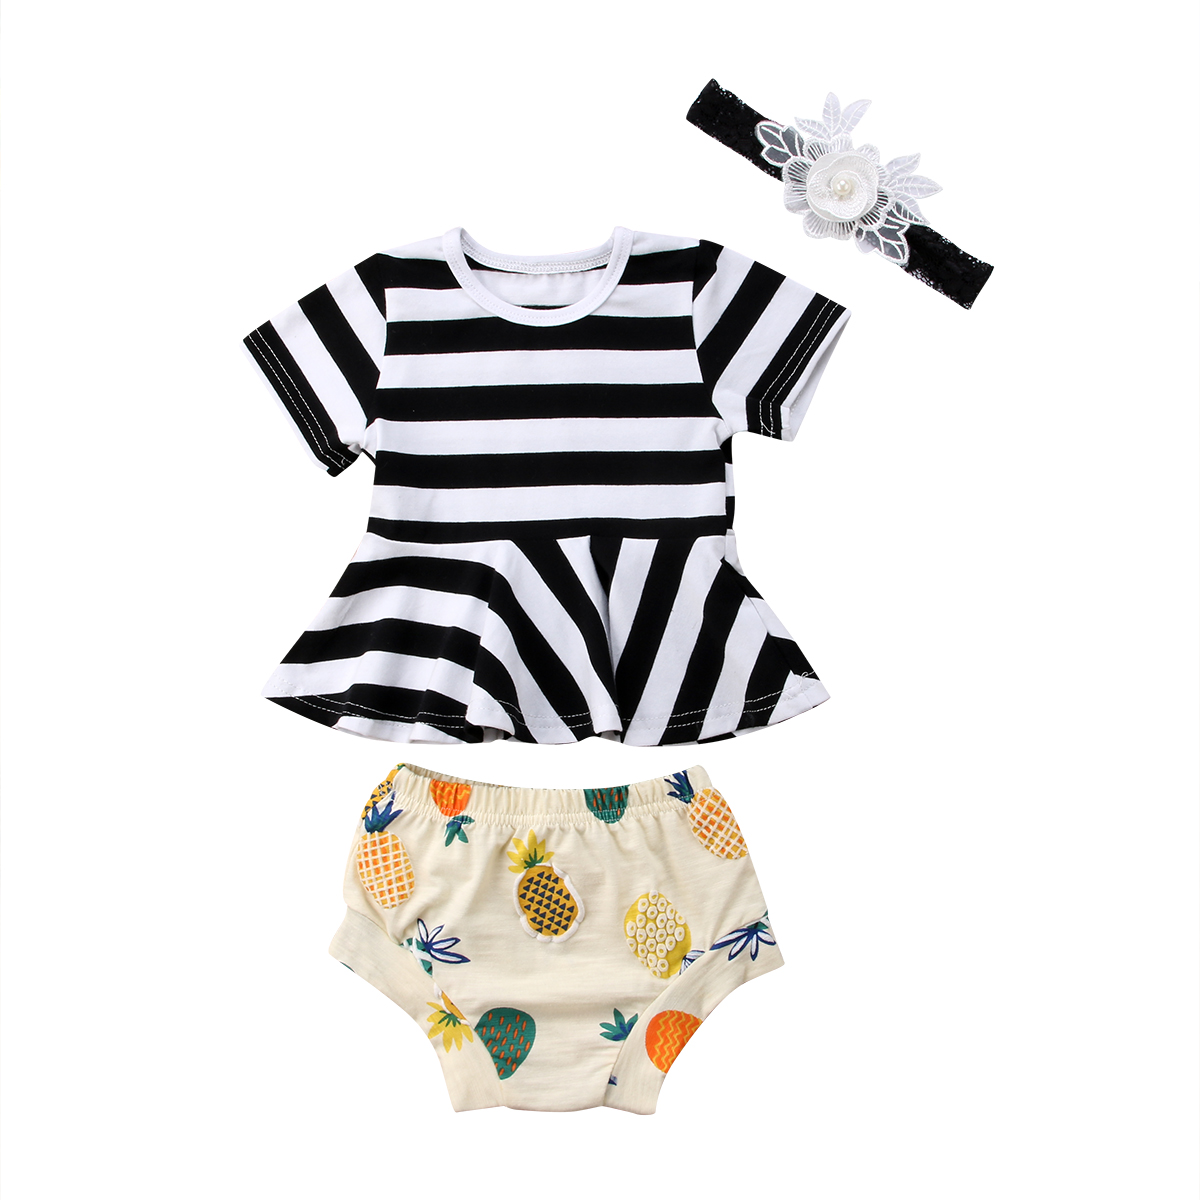 3PCS Newborn Toddler Clothes Baby Girls Dress Tops T-shirts Shorts Headband Cotton 3PCS Outfit Clothing Sets Baby Girl 0-24M